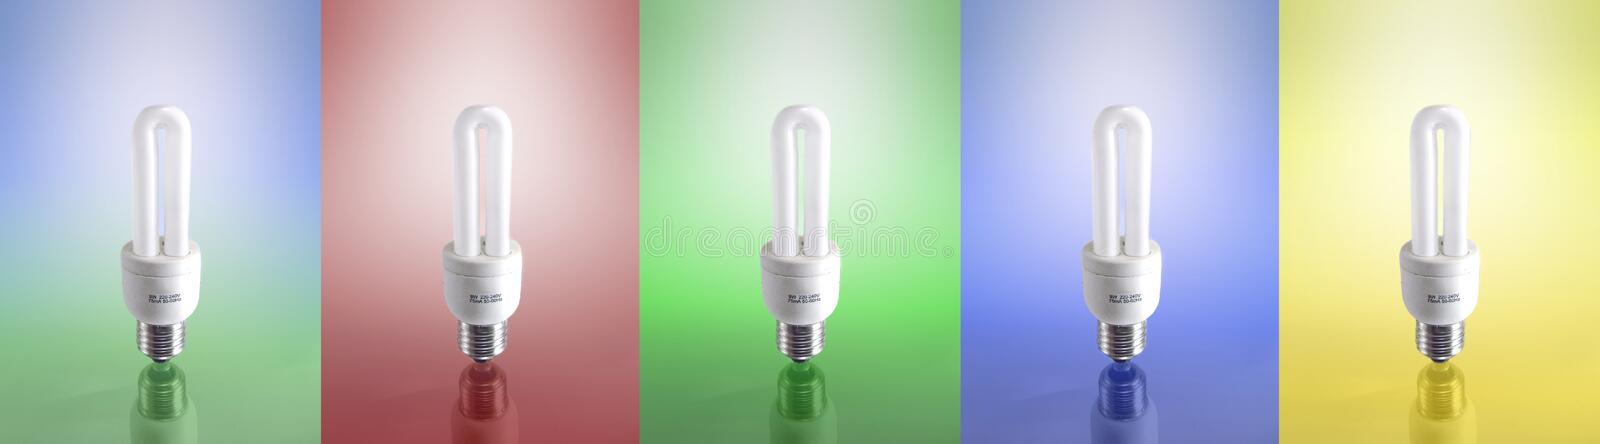 Compact Fluorescent Lamp (5 Different Versions). 5 different versions of a compact fluorescent lamp. yellow red blue green and world background. with reflextion royalty free stock photo